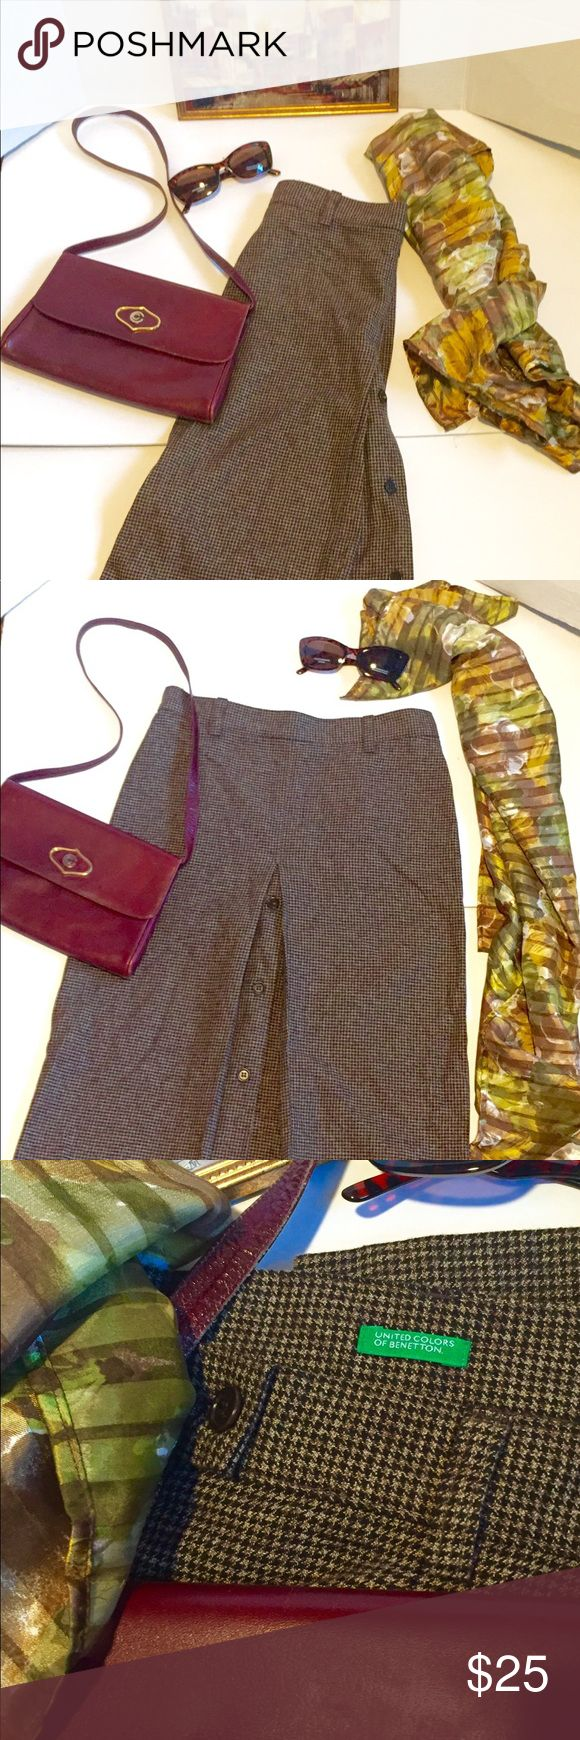 United Colors of Benetton plaid skirt bundl 4 fall Beautiful fashion lot for fall of 4 pieces- 1 -United Colors of Benetton brown plaid skirt beautiful quality tweed look with unique style and design pleated with button down design sz 3/4 midi knee length.2-a beautiful burgundy Italian leather shoulder bag by Perozzi removable gold snap handle to use as a clutch all genuine leather gr8 design on front, 3-a beautiful floral silk scarf in fall colors large size like new, and 4-pair of brand…